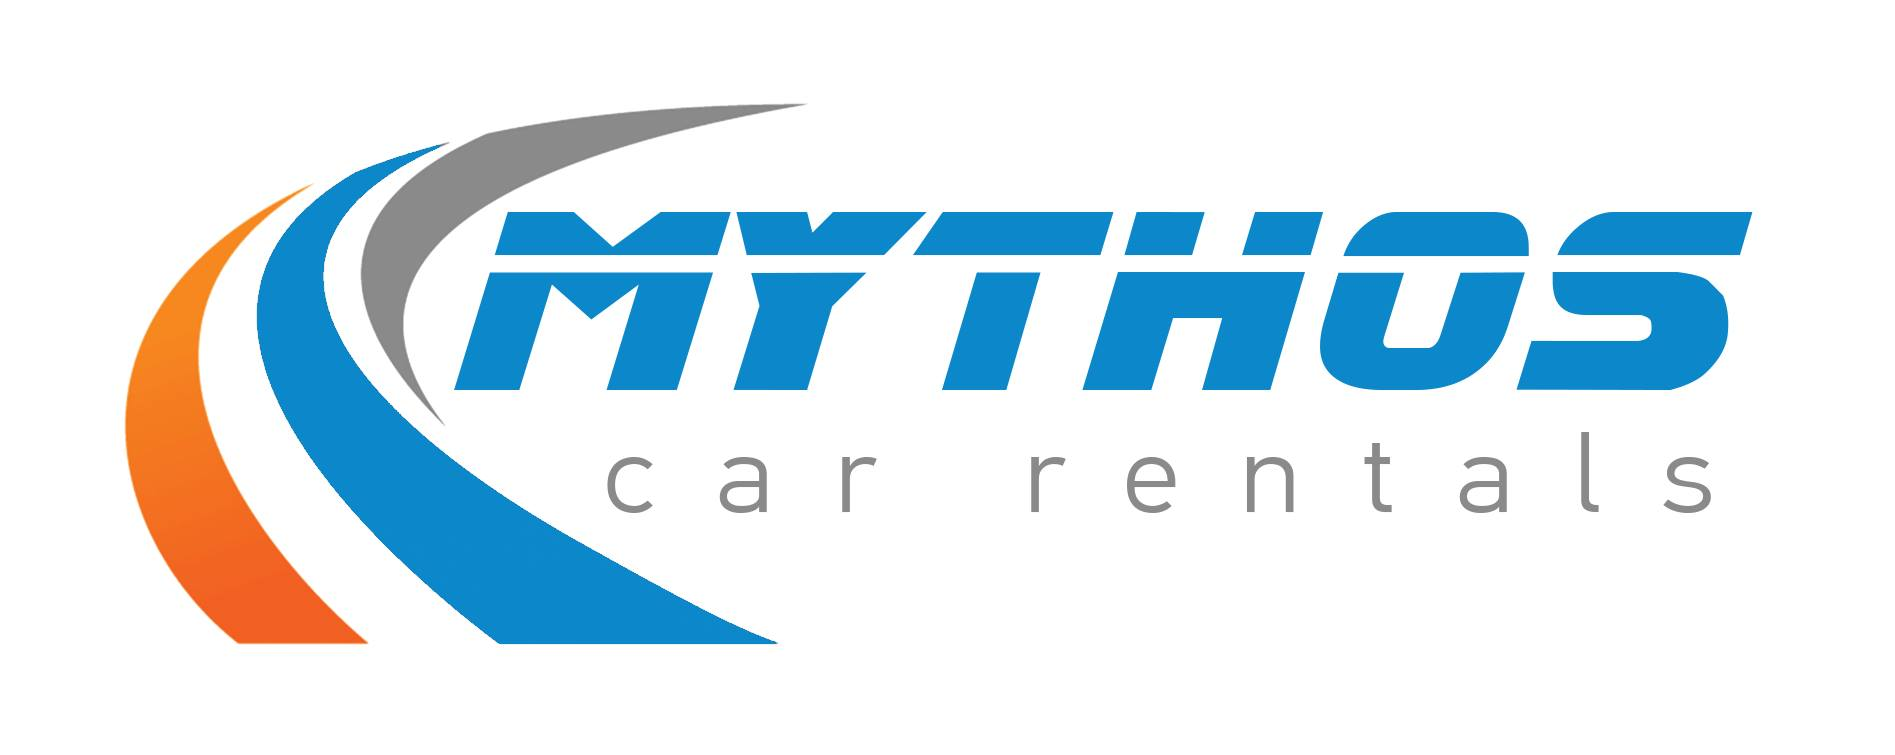 mythos car rentals, rent a car mythos car hire heraklion, car hire chania, car hire crete, crete car hire, chania car hire, heraklion car hire, rent a car in heraklion, rent a car in chania, rent a car in crete, rent a car heraklion, rent a car chania, rent a car crete, car rental heraklion, car rental chania, car rental crete, crete car rental, heraklion car rental, chania car rental, car hire Heraklion airport, car hire Chania airport, rent a car Heraklion airport, rent a car Chania airport, crete rent car, rent car crete, heraklion rent a car, chania rent a car, crete rent a car